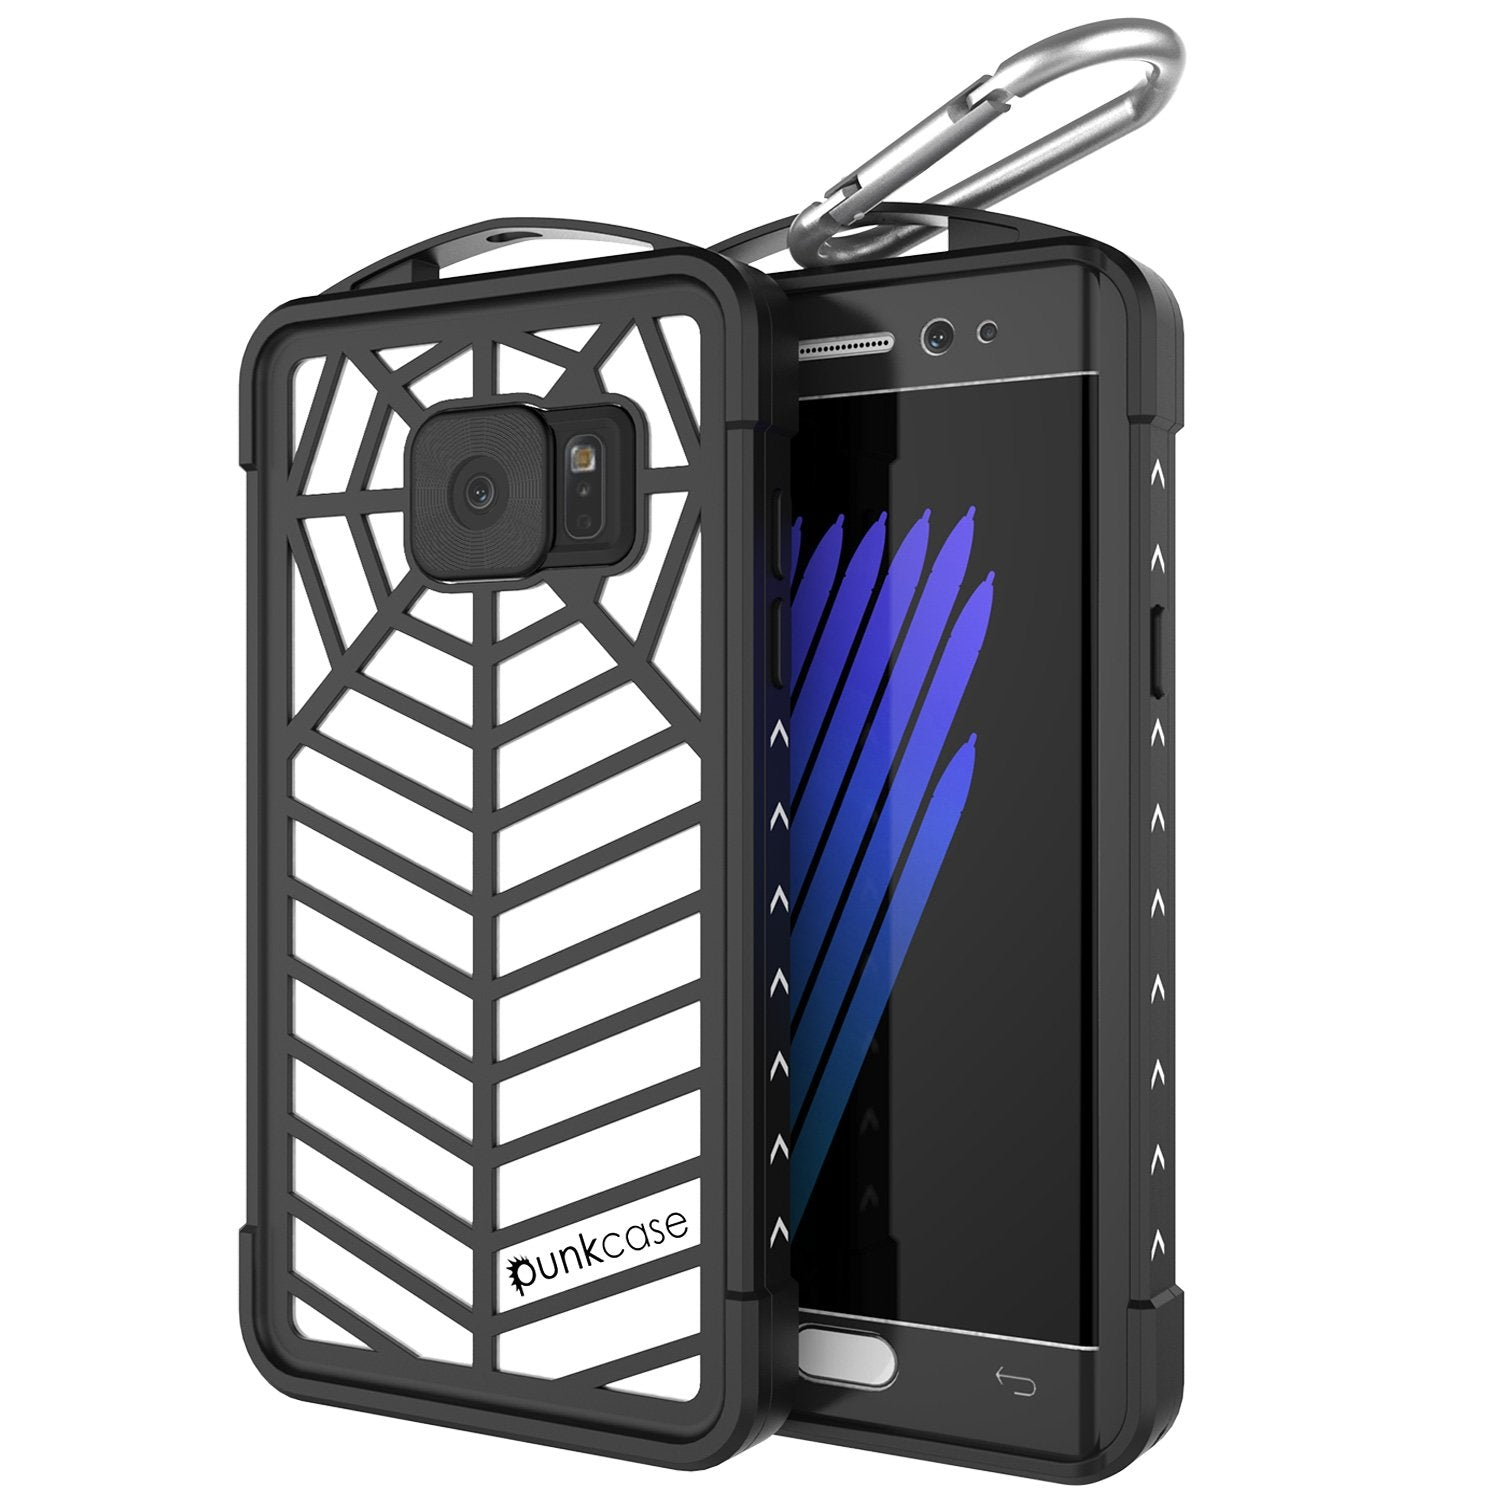 Galaxy Note FE Waterproof Case, Punkcase WEBSTER Series, Transparent | Heavy Duty Armor Cover